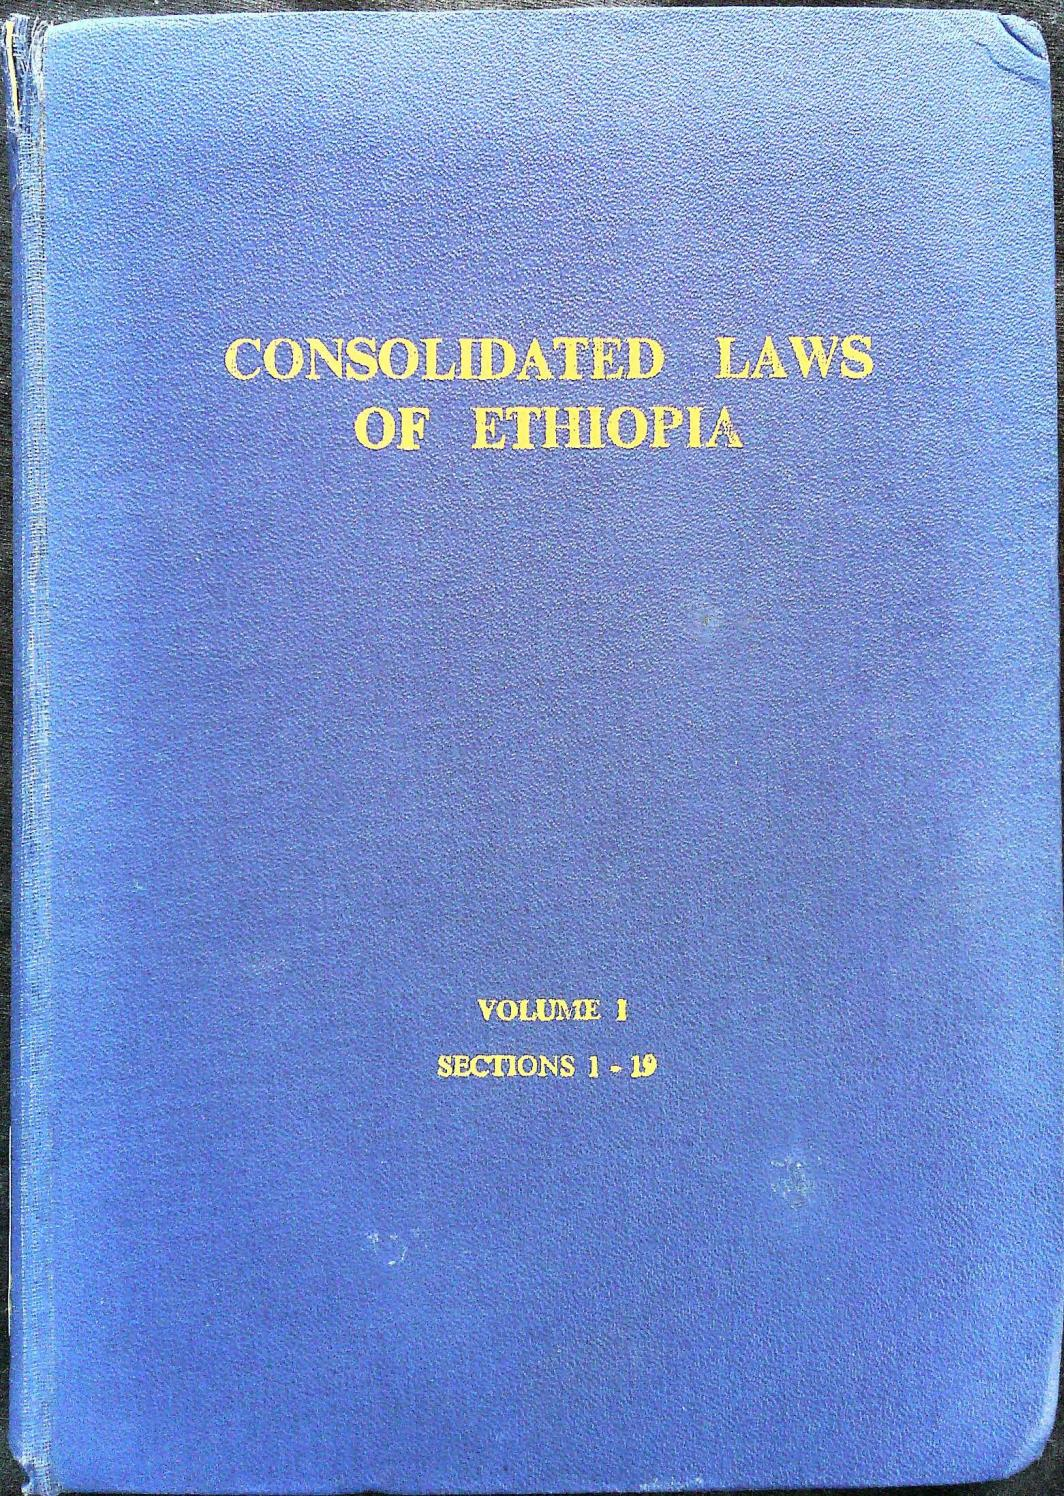 Consolidated Laws of Ethiopia Vol  I (1972) [Part 2] by